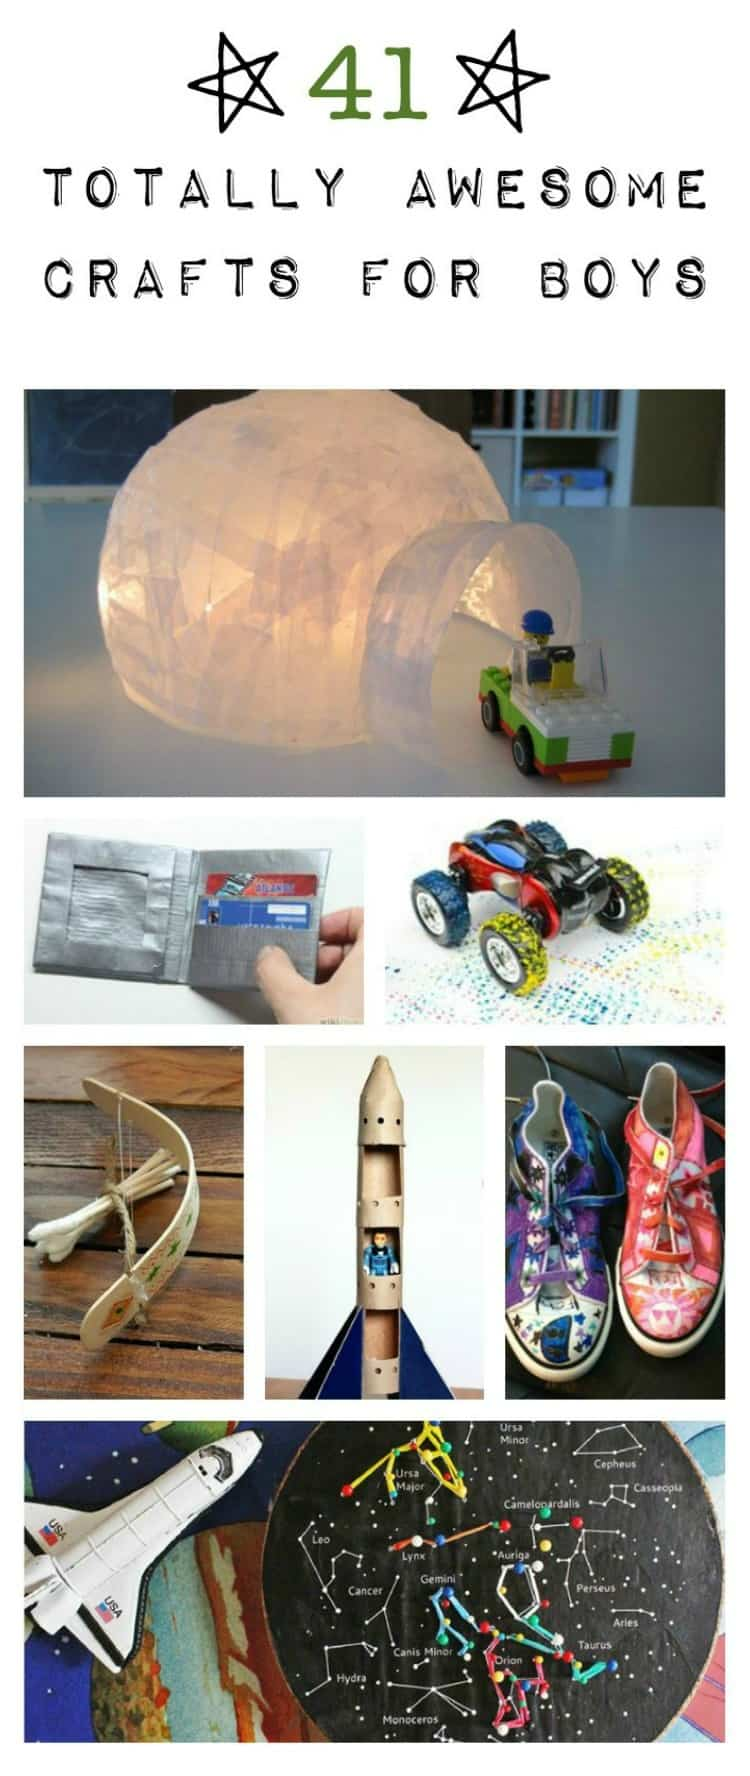 41 craft ideas for boys- there are some really fun ideas here that all kids would like.